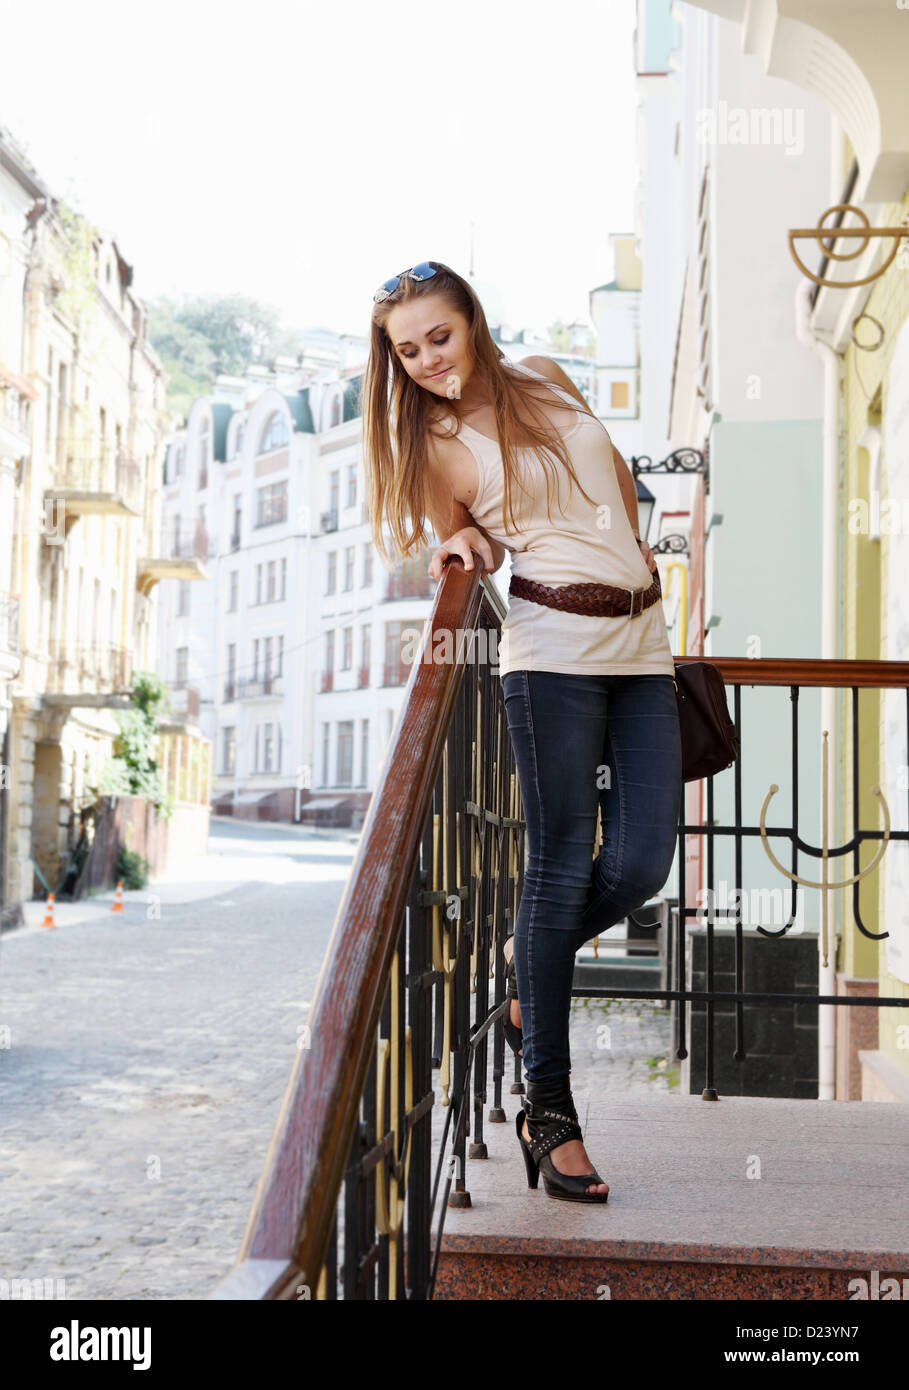 Cute Smiling Young Woman Upstairs Posing Outdoors Stock Photo